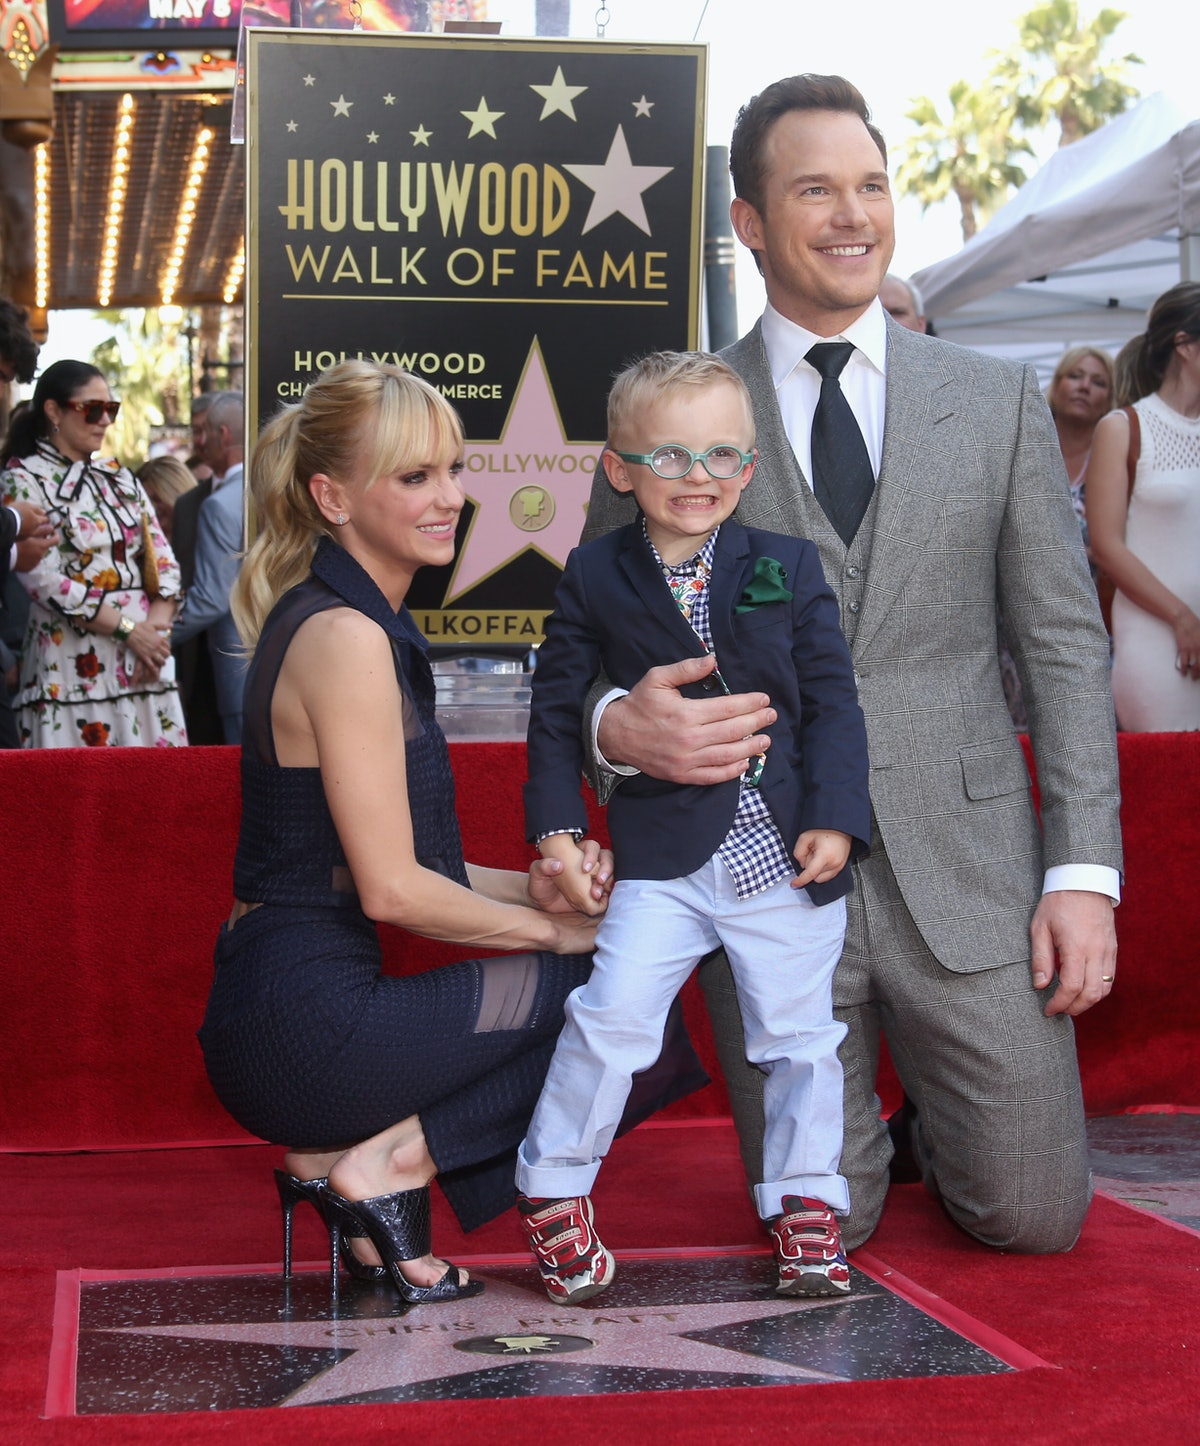 Anna Faris & Chris Pratt's Son Jack Has Some Hilarious Thoughts About His Parents Being Famous